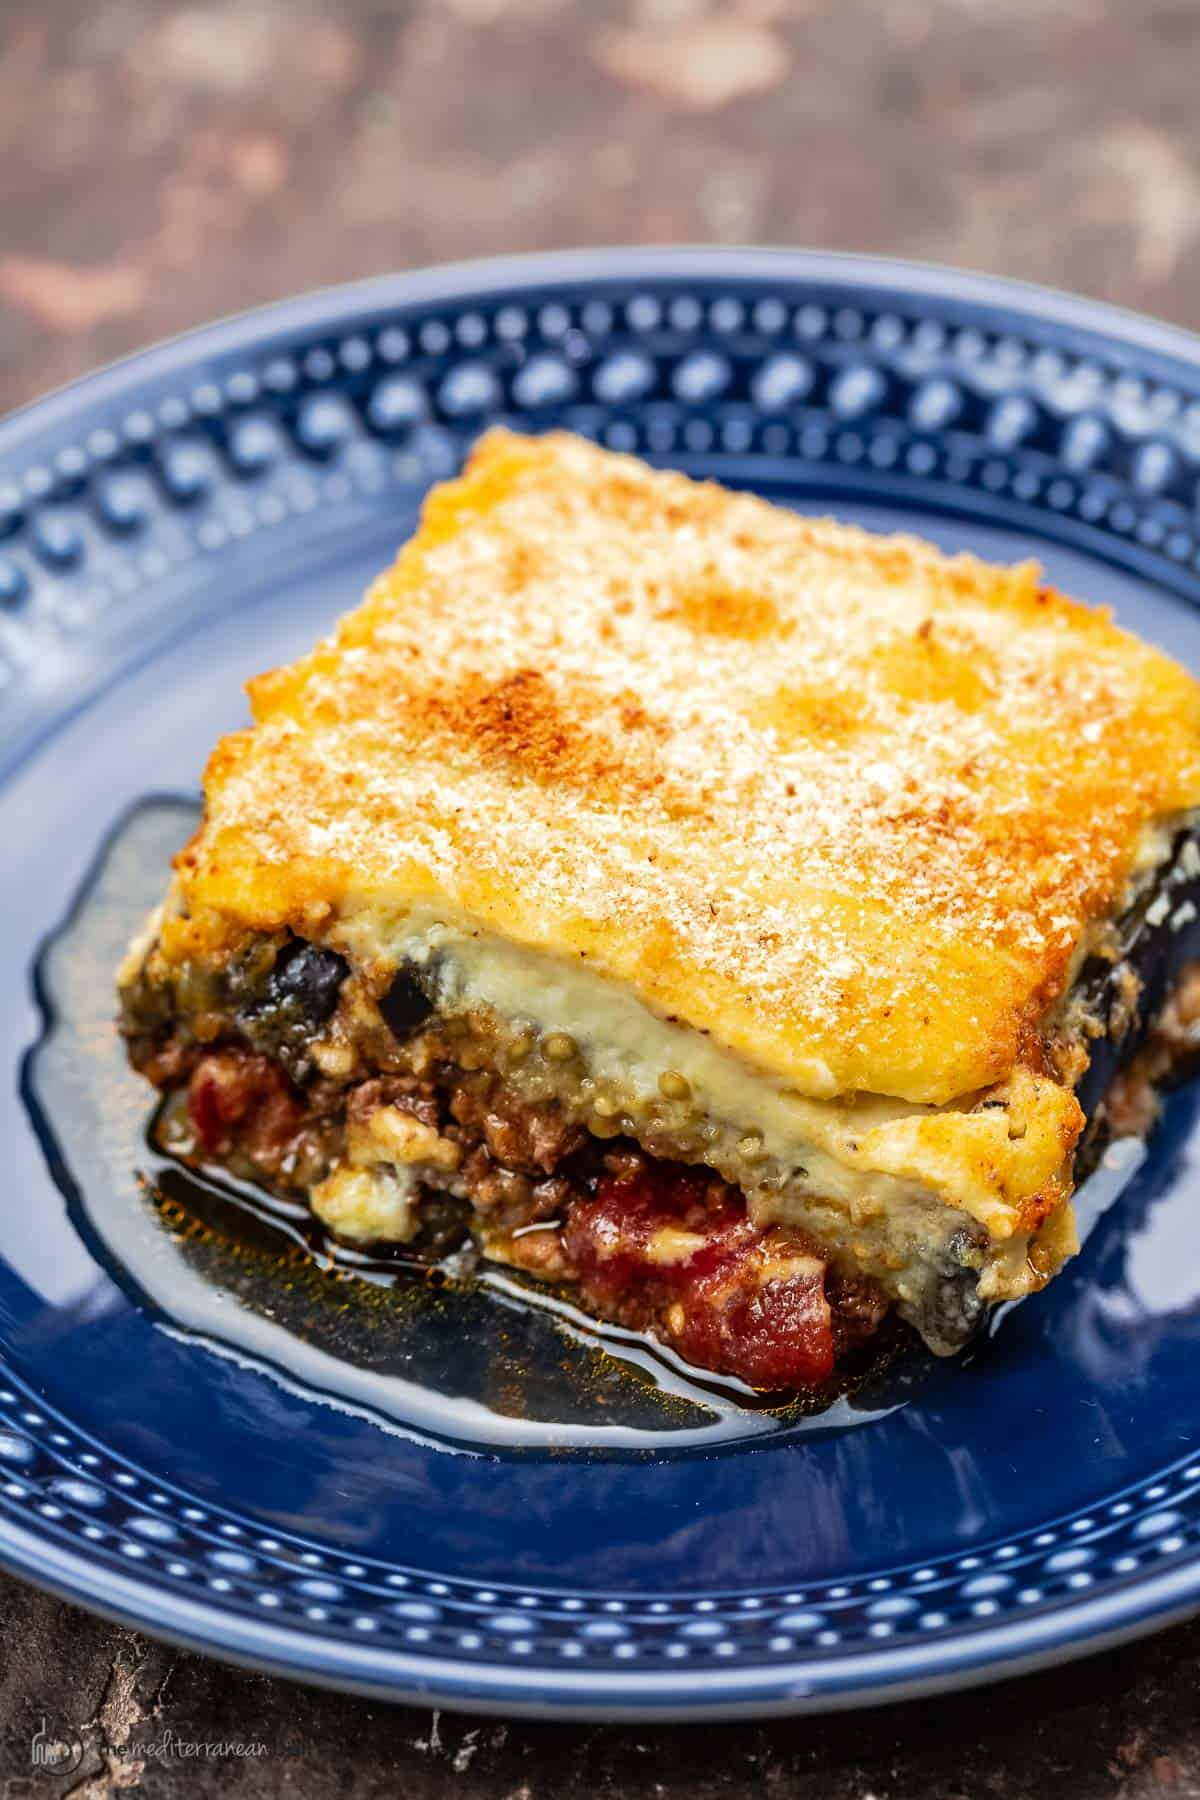 one slice of moussaka with eggplant, meat sauce, and bechamel on a blue plate